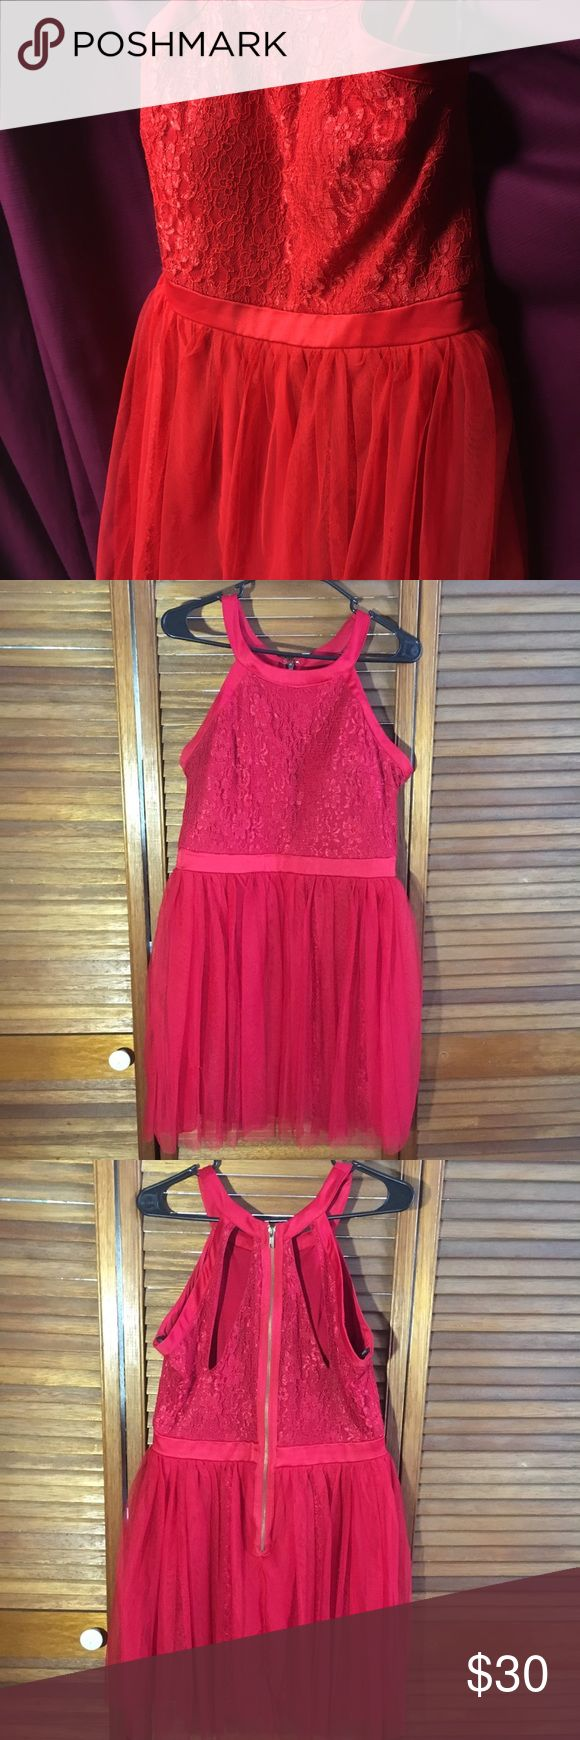 Size 13/14 Short Red Party Dress Size 13/14 short dress Red Tule with Lace design, Gold Zipper Built in bra from Group USA Good Condition Dresses Prom